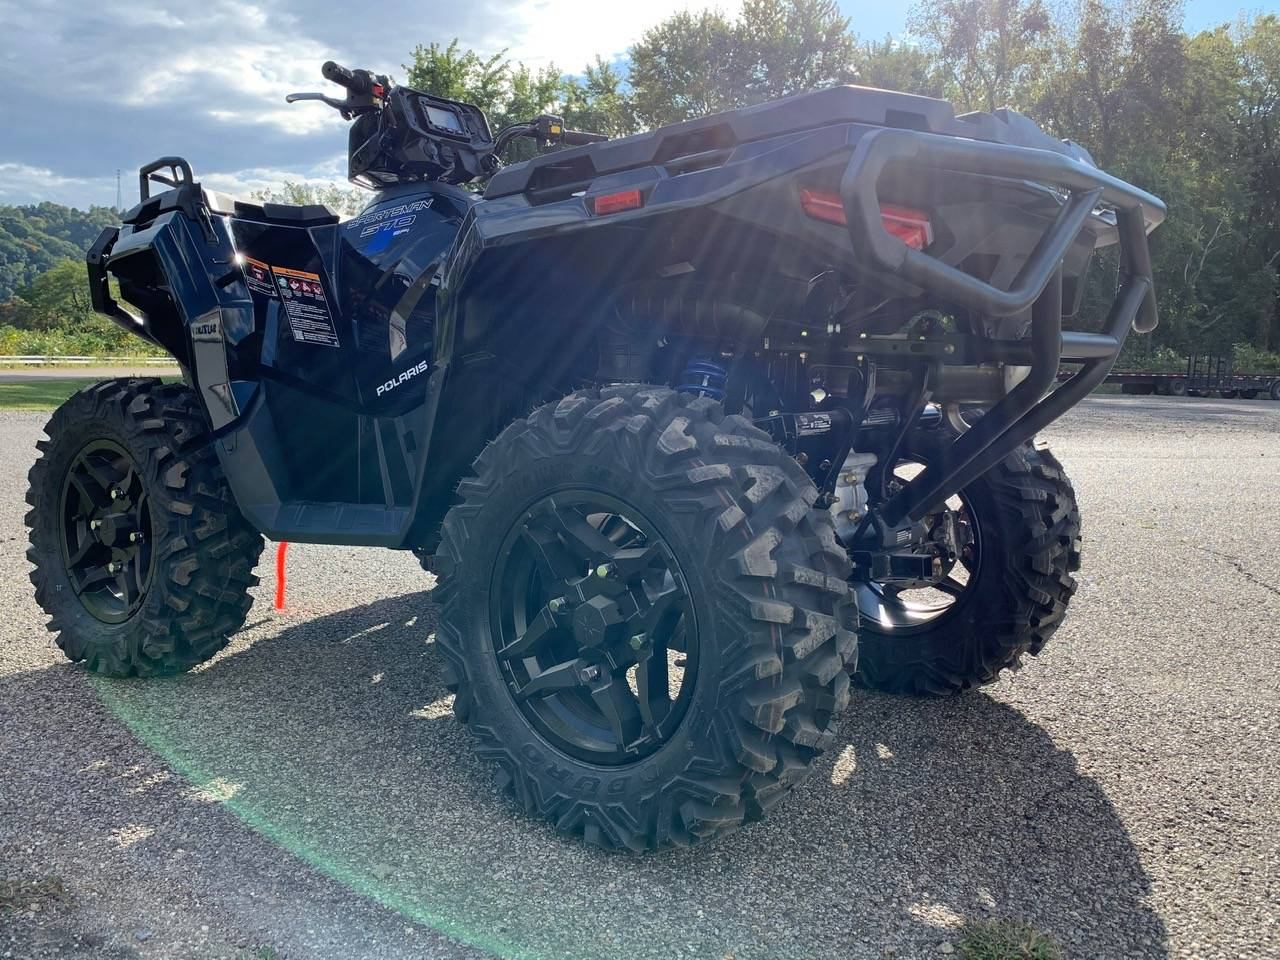 2021 Polaris Sportsman 570 Trail in Brilliant, Ohio - Photo 5